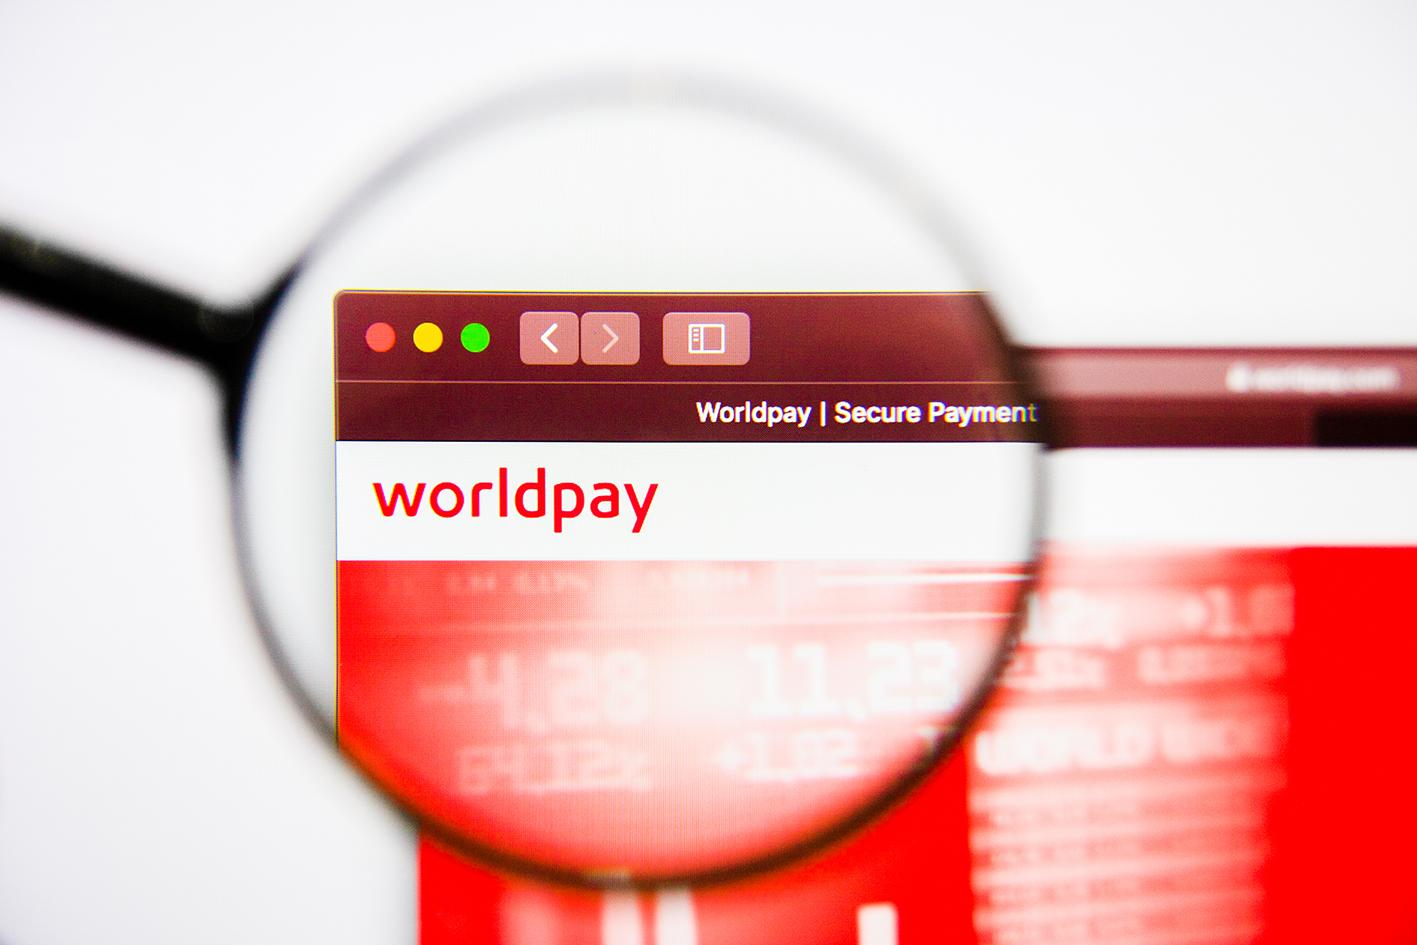 PTSG passes the test for Worldpay